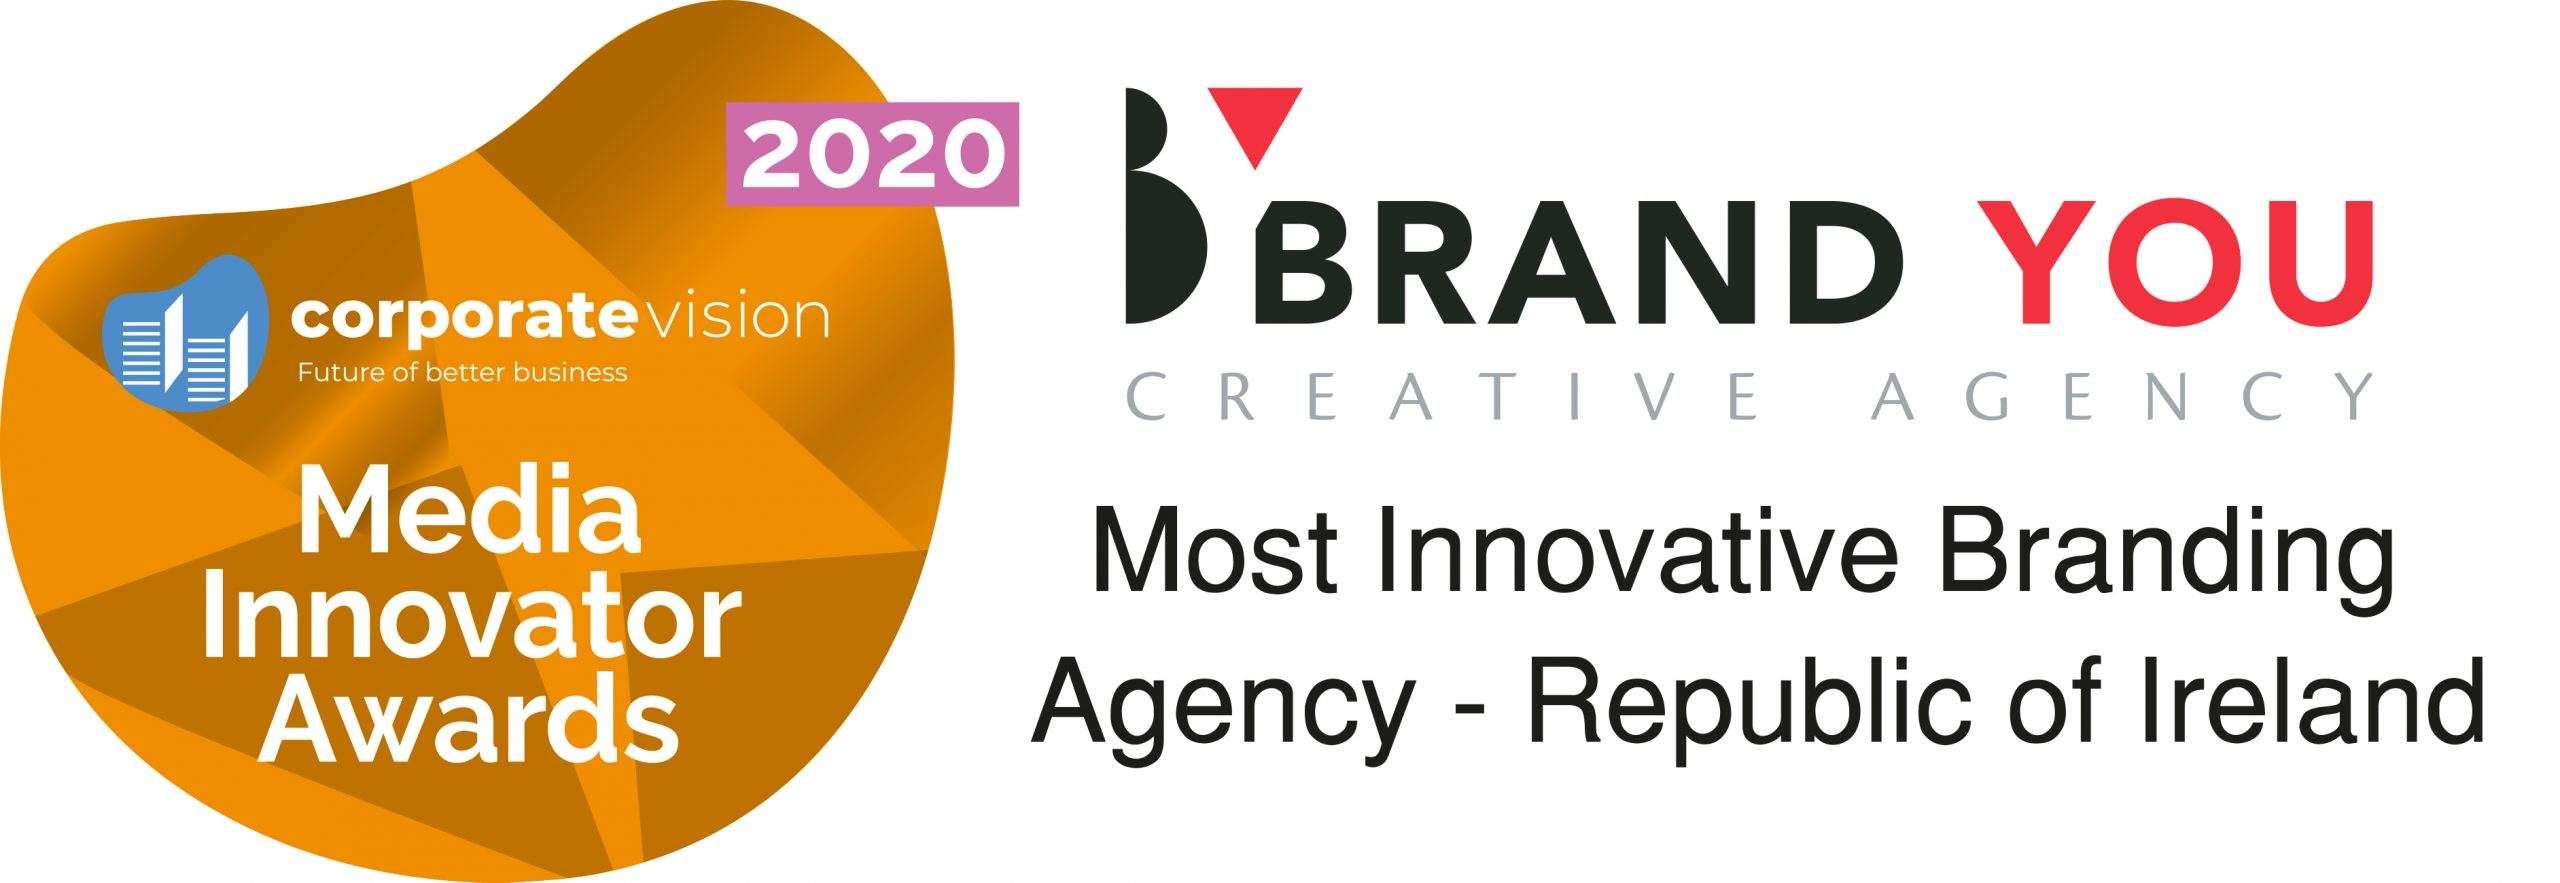 Nov20070-2020-Media-Innovator-Awards-Winners-Logo-1